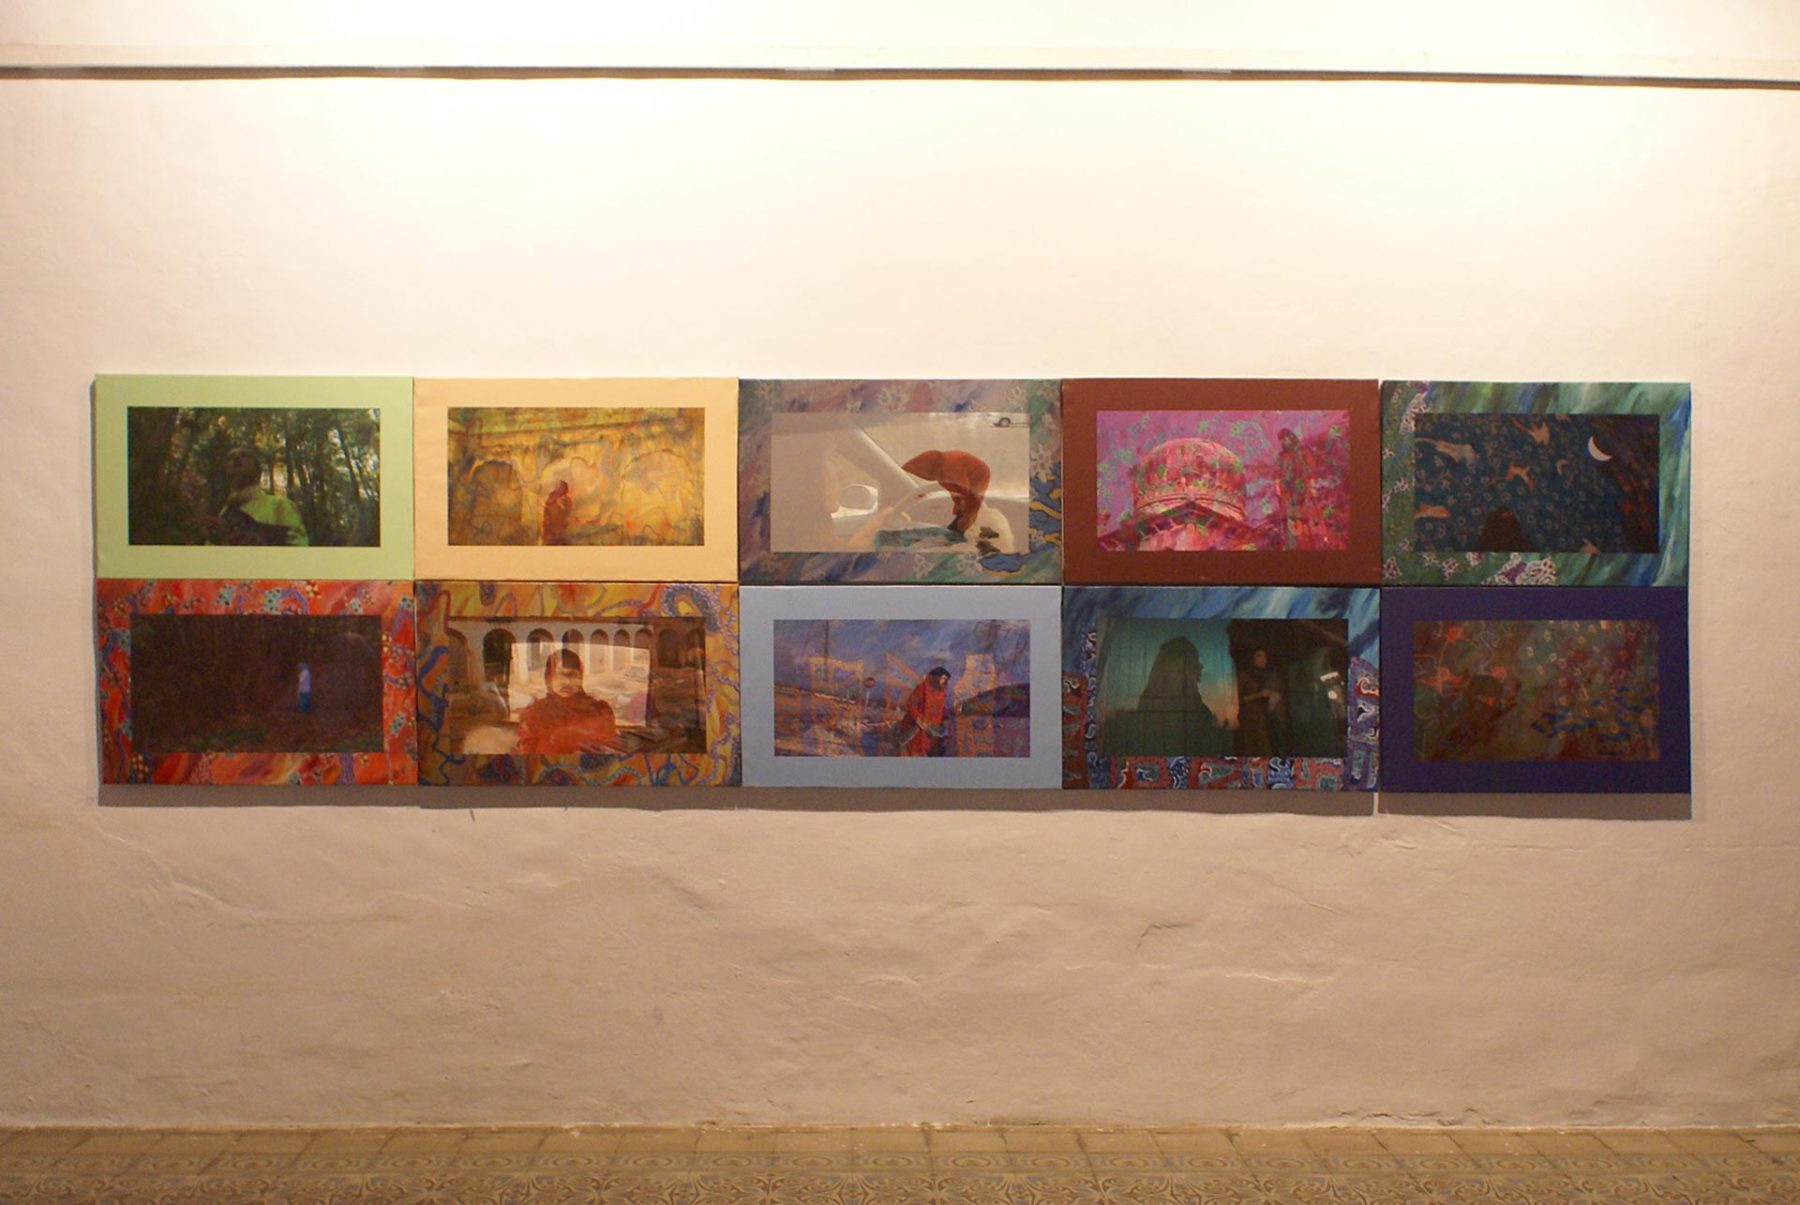 Salaat, view 3 (2011) mixed media installation